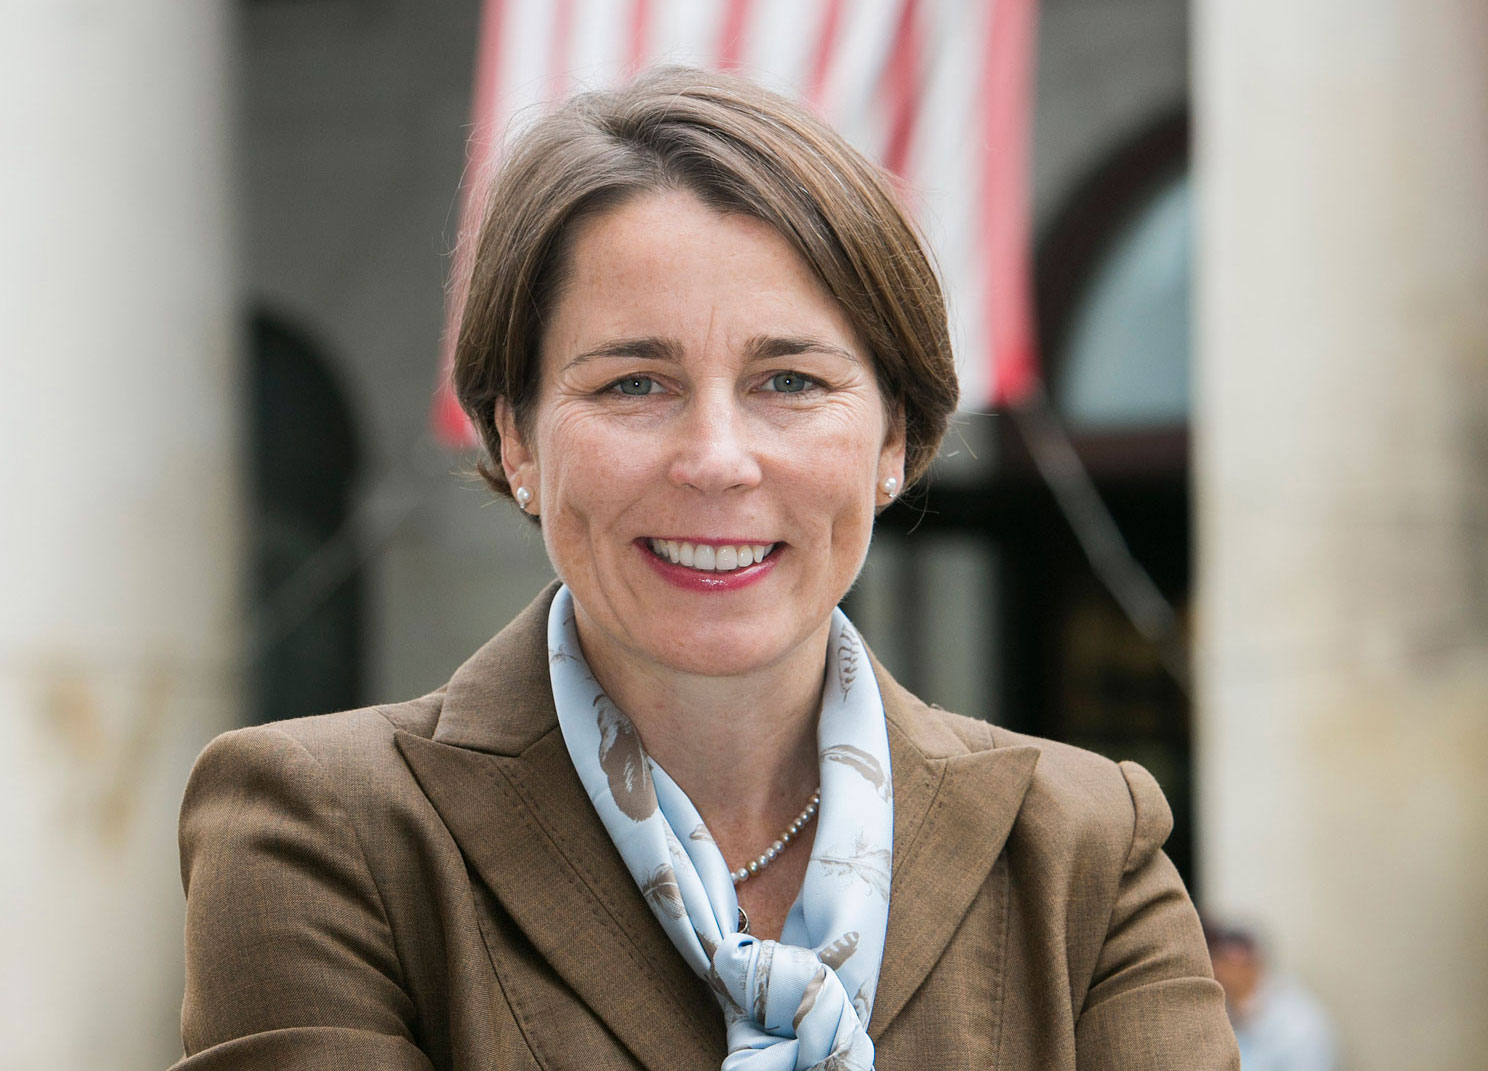 Healey was one of two state's attorneys to initiative a fraud investigation of ExxonMobil in 2015. Her male counterpart in the investigation received most of the attention for the case until he stepped down earlier this year amid sexual assault accusations. Photo by Marilyn Humphries.